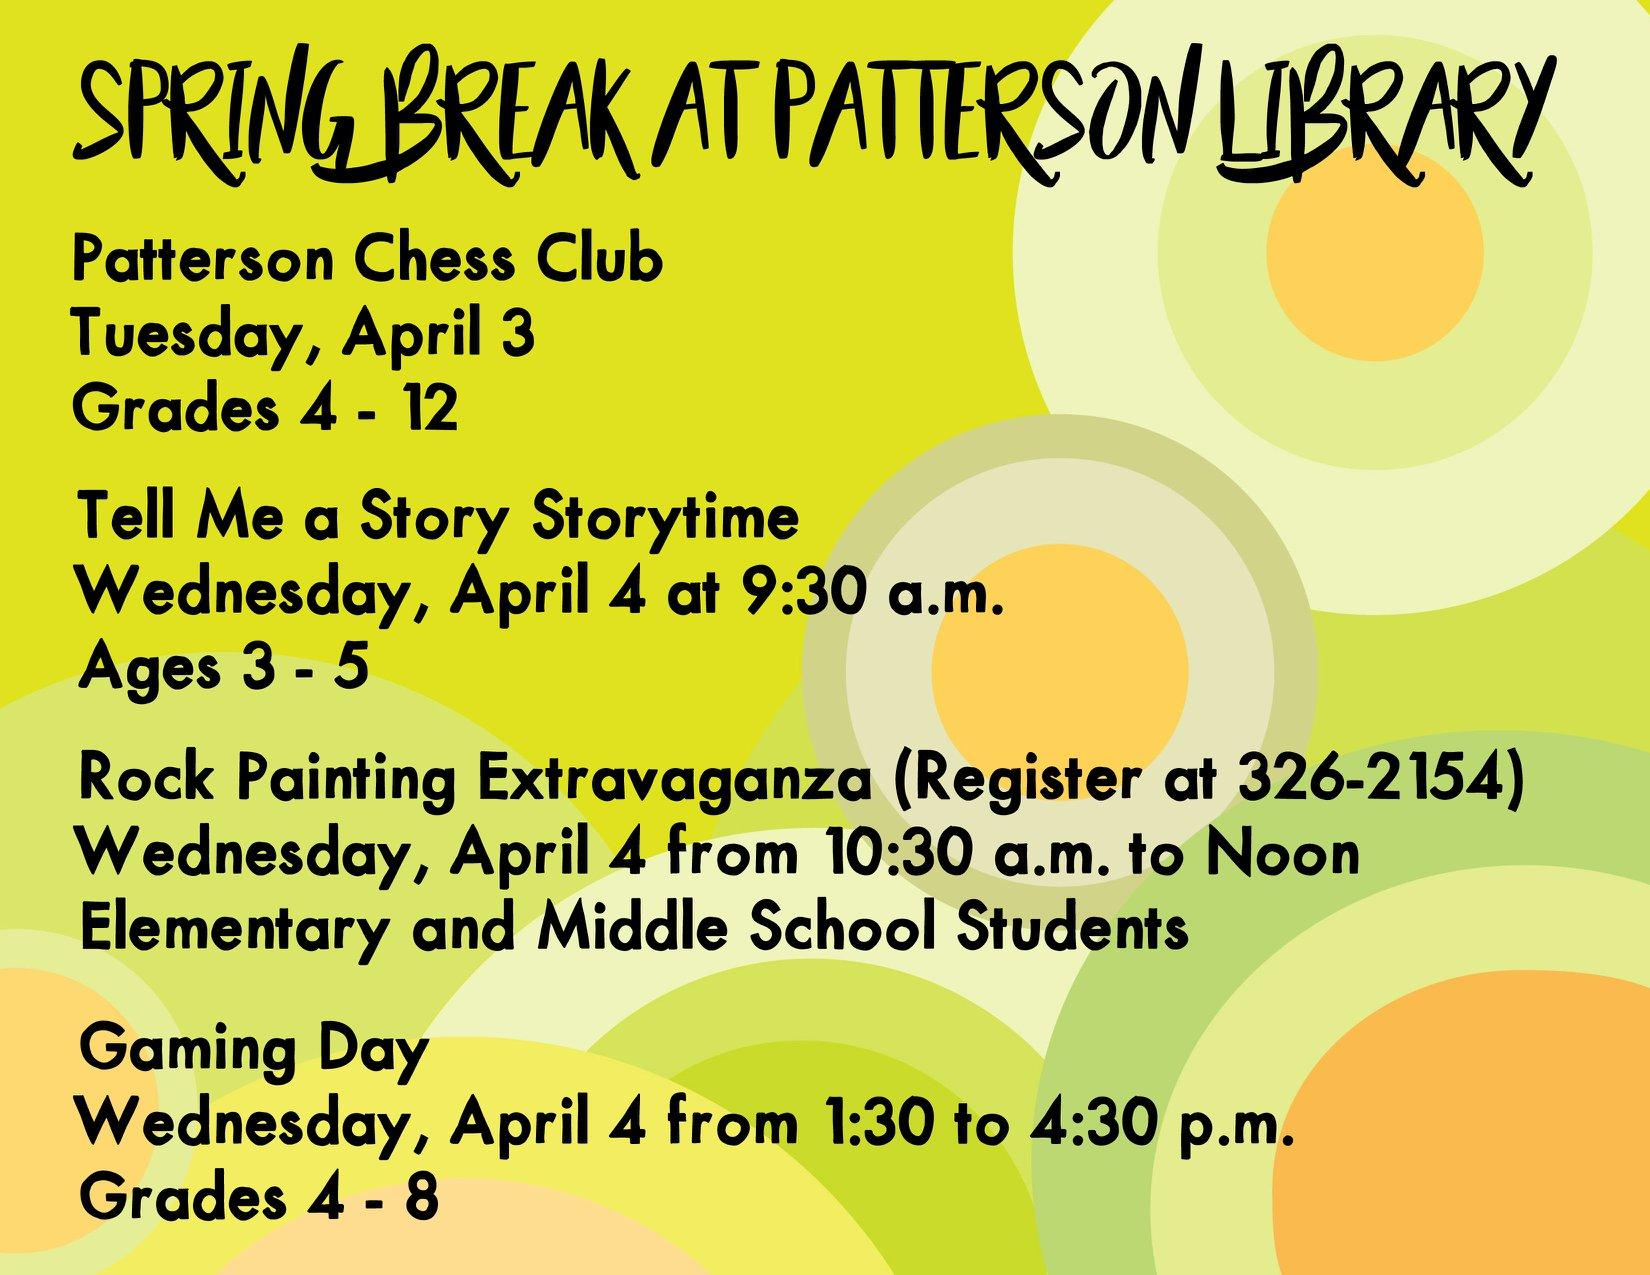 Spring Break at Patterson Library